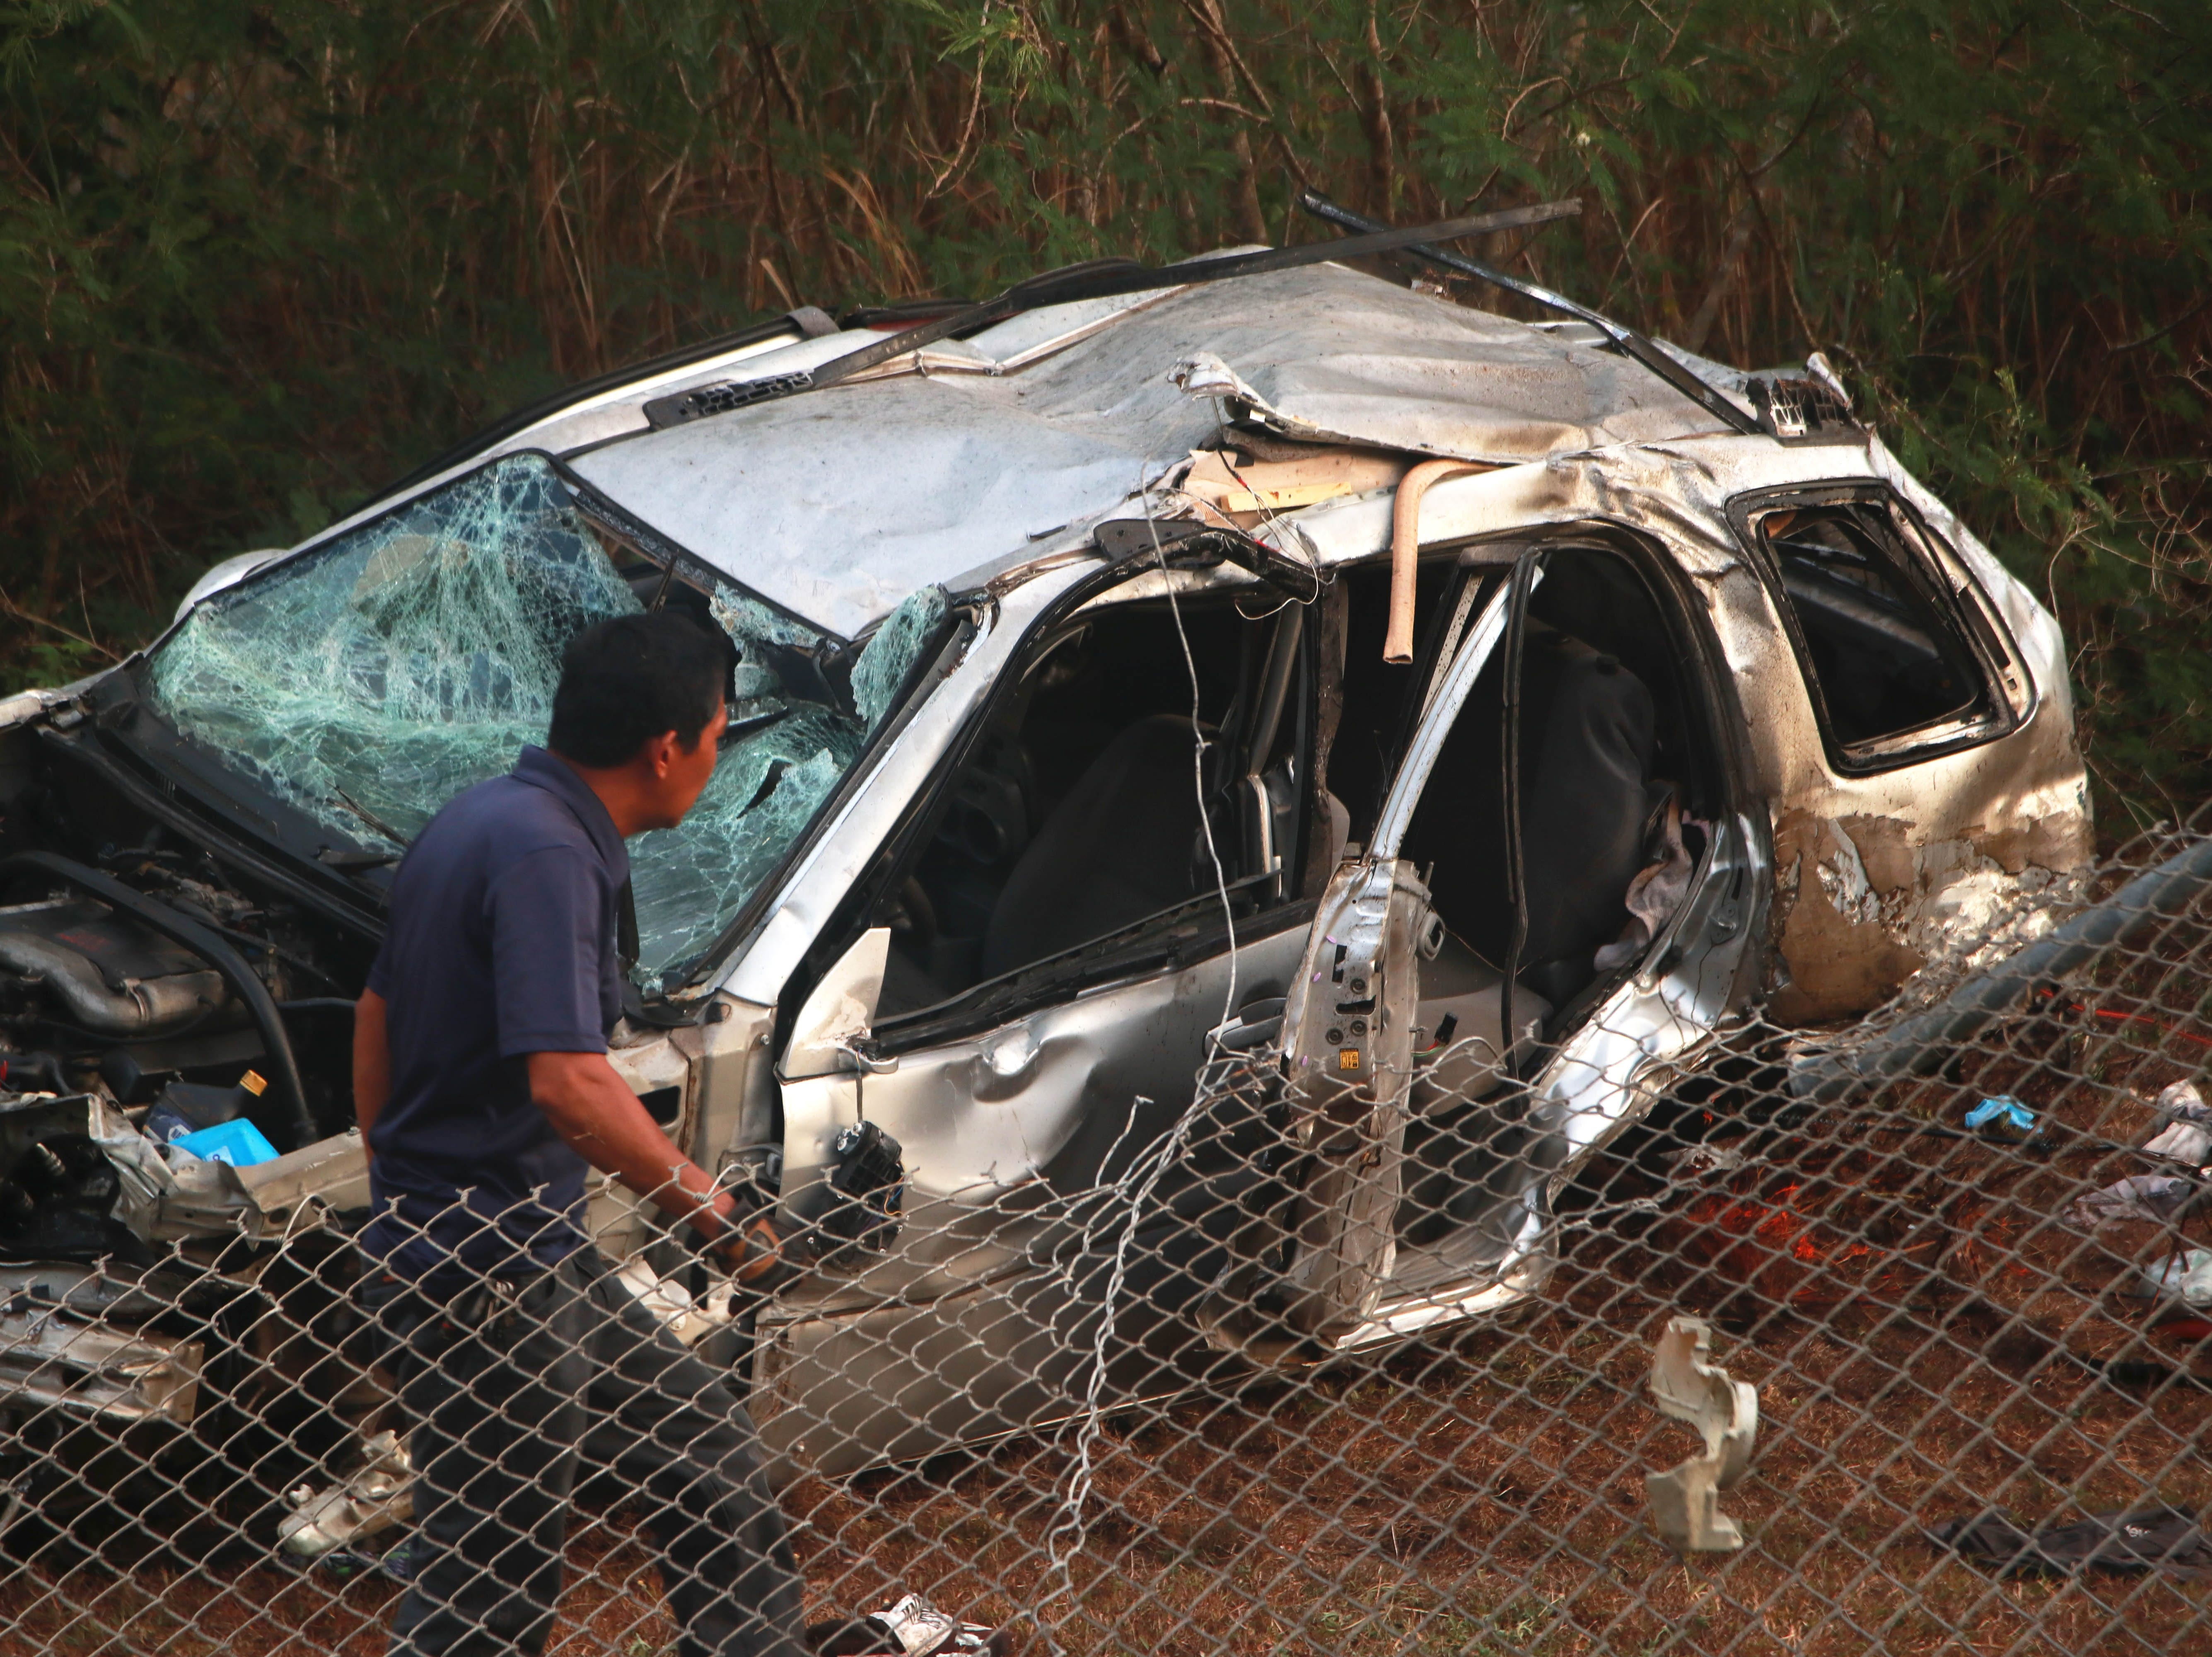 Police prepare to tow an SUV involved in a fatal accident early Tuesday morning on April 16, 2019 near the entrance to Agat.